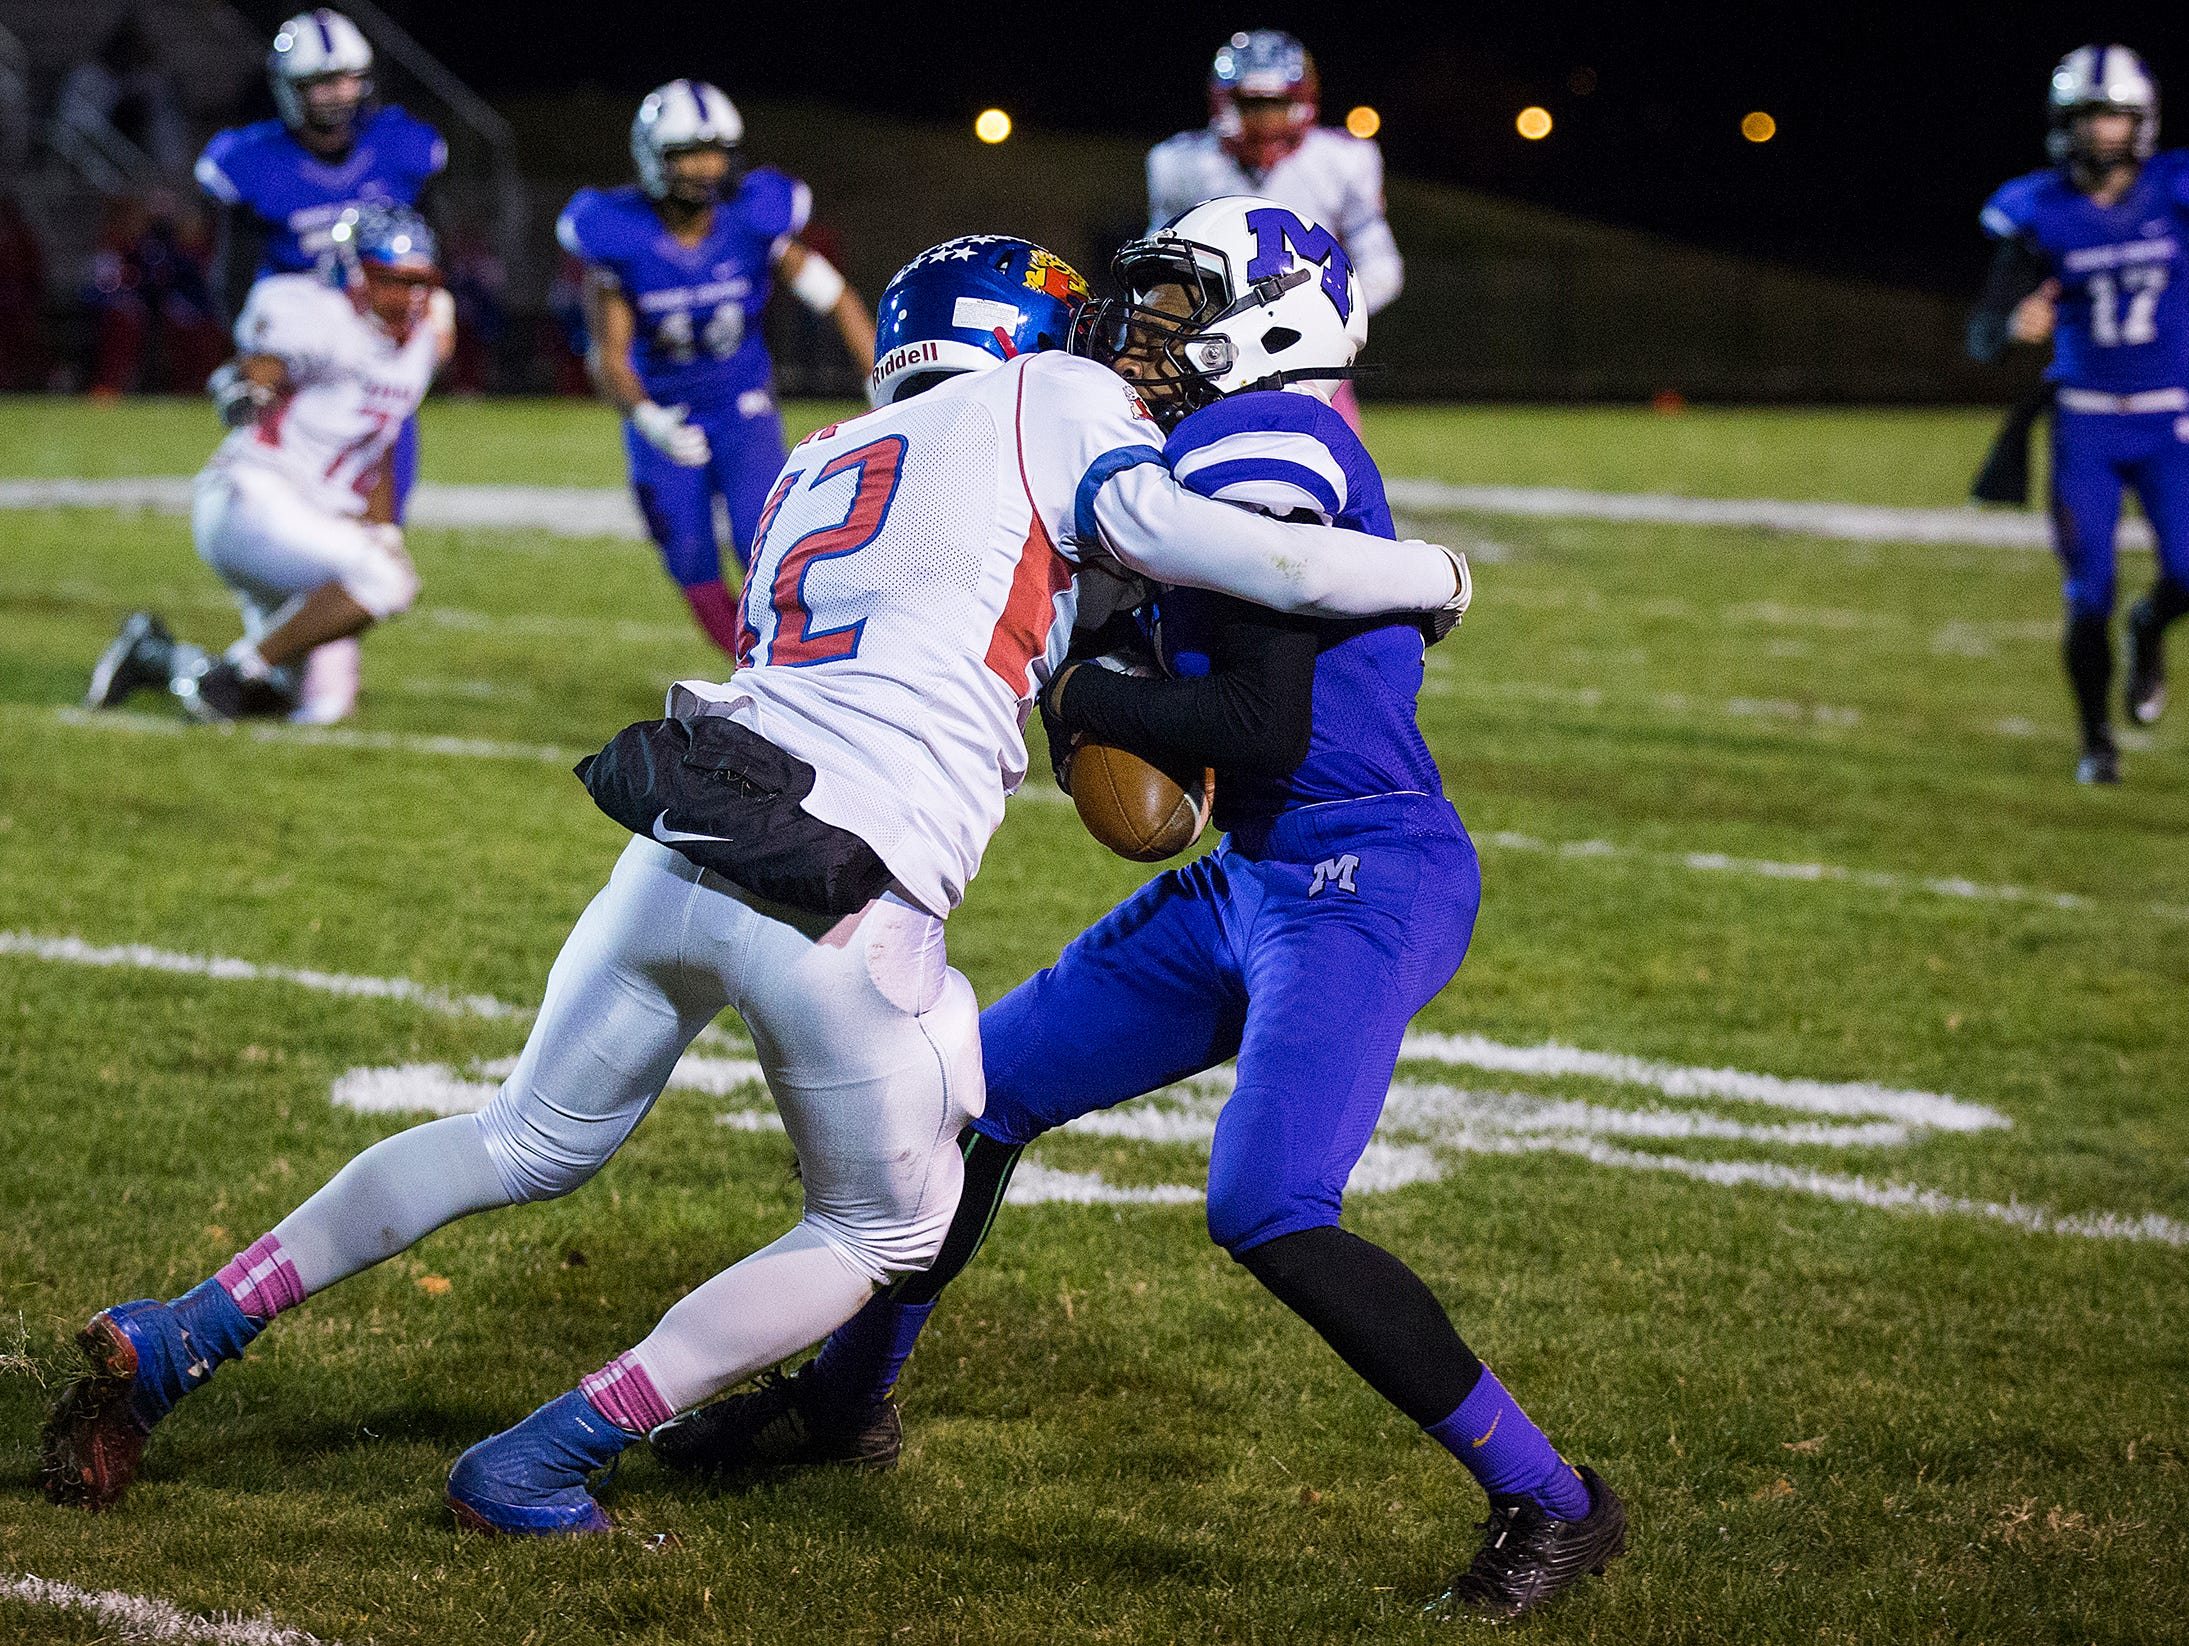 Central's Eliseus Young struggles against Kokomo's defense during their game at Central Friday, Oct. 30, 2015.